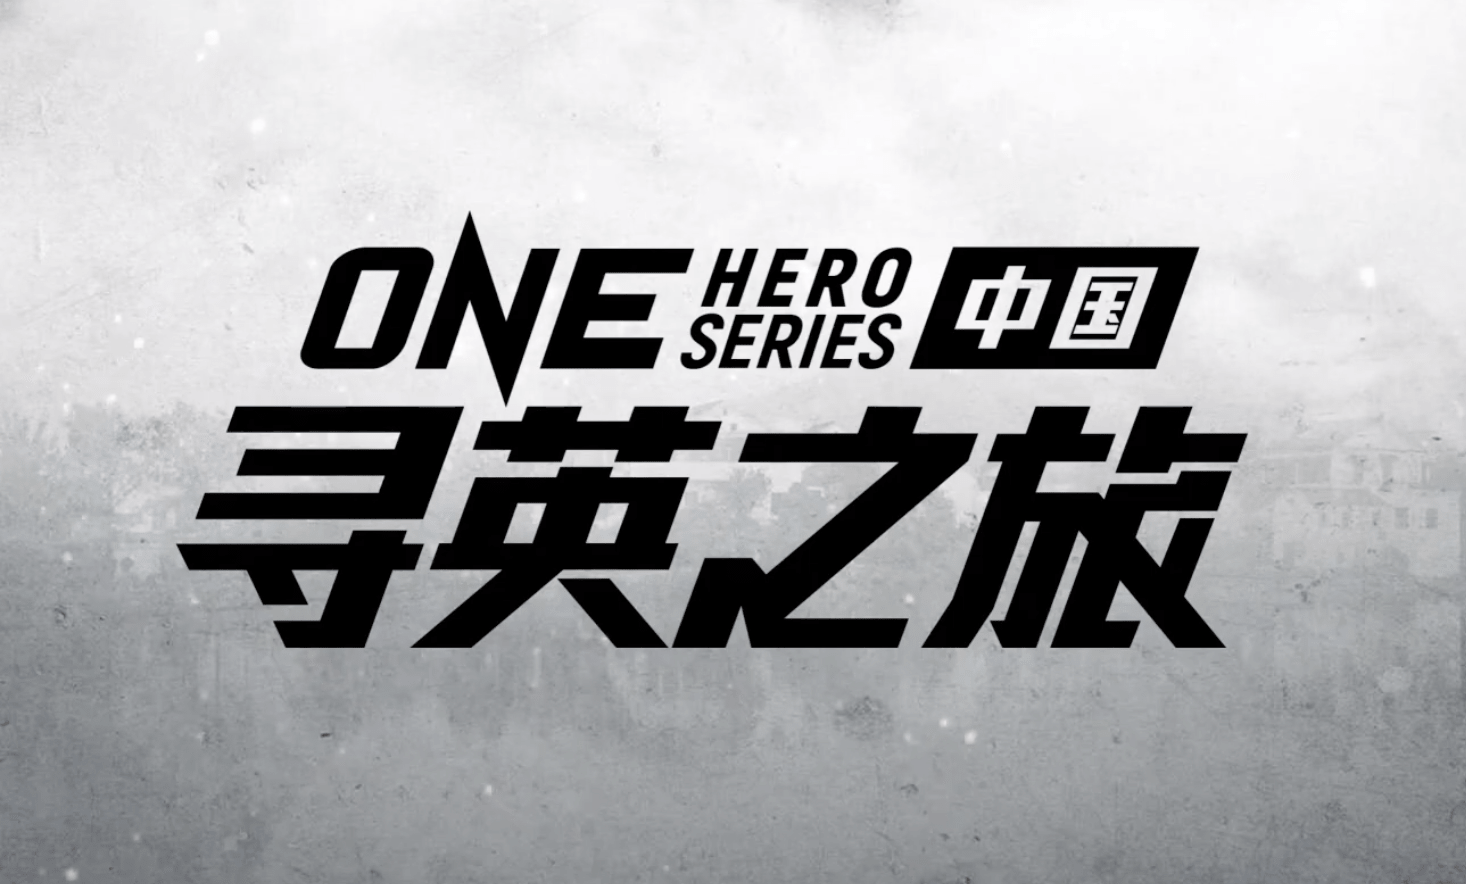 ONE Hero Series November Results And Replay